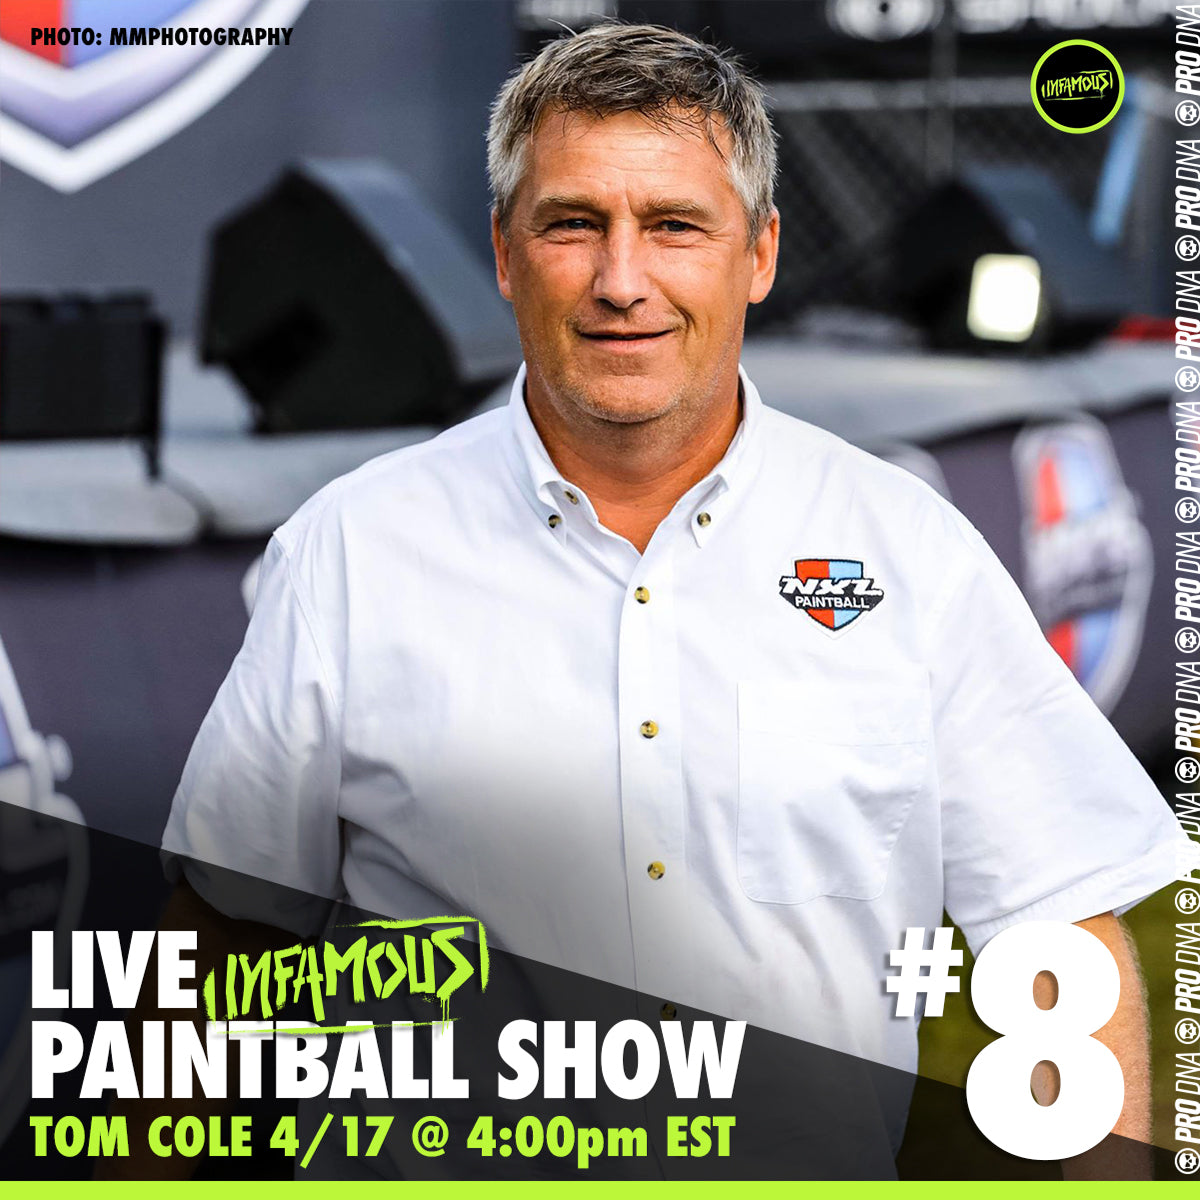 Infamous Paintball Live Show #8 - Tom Cole